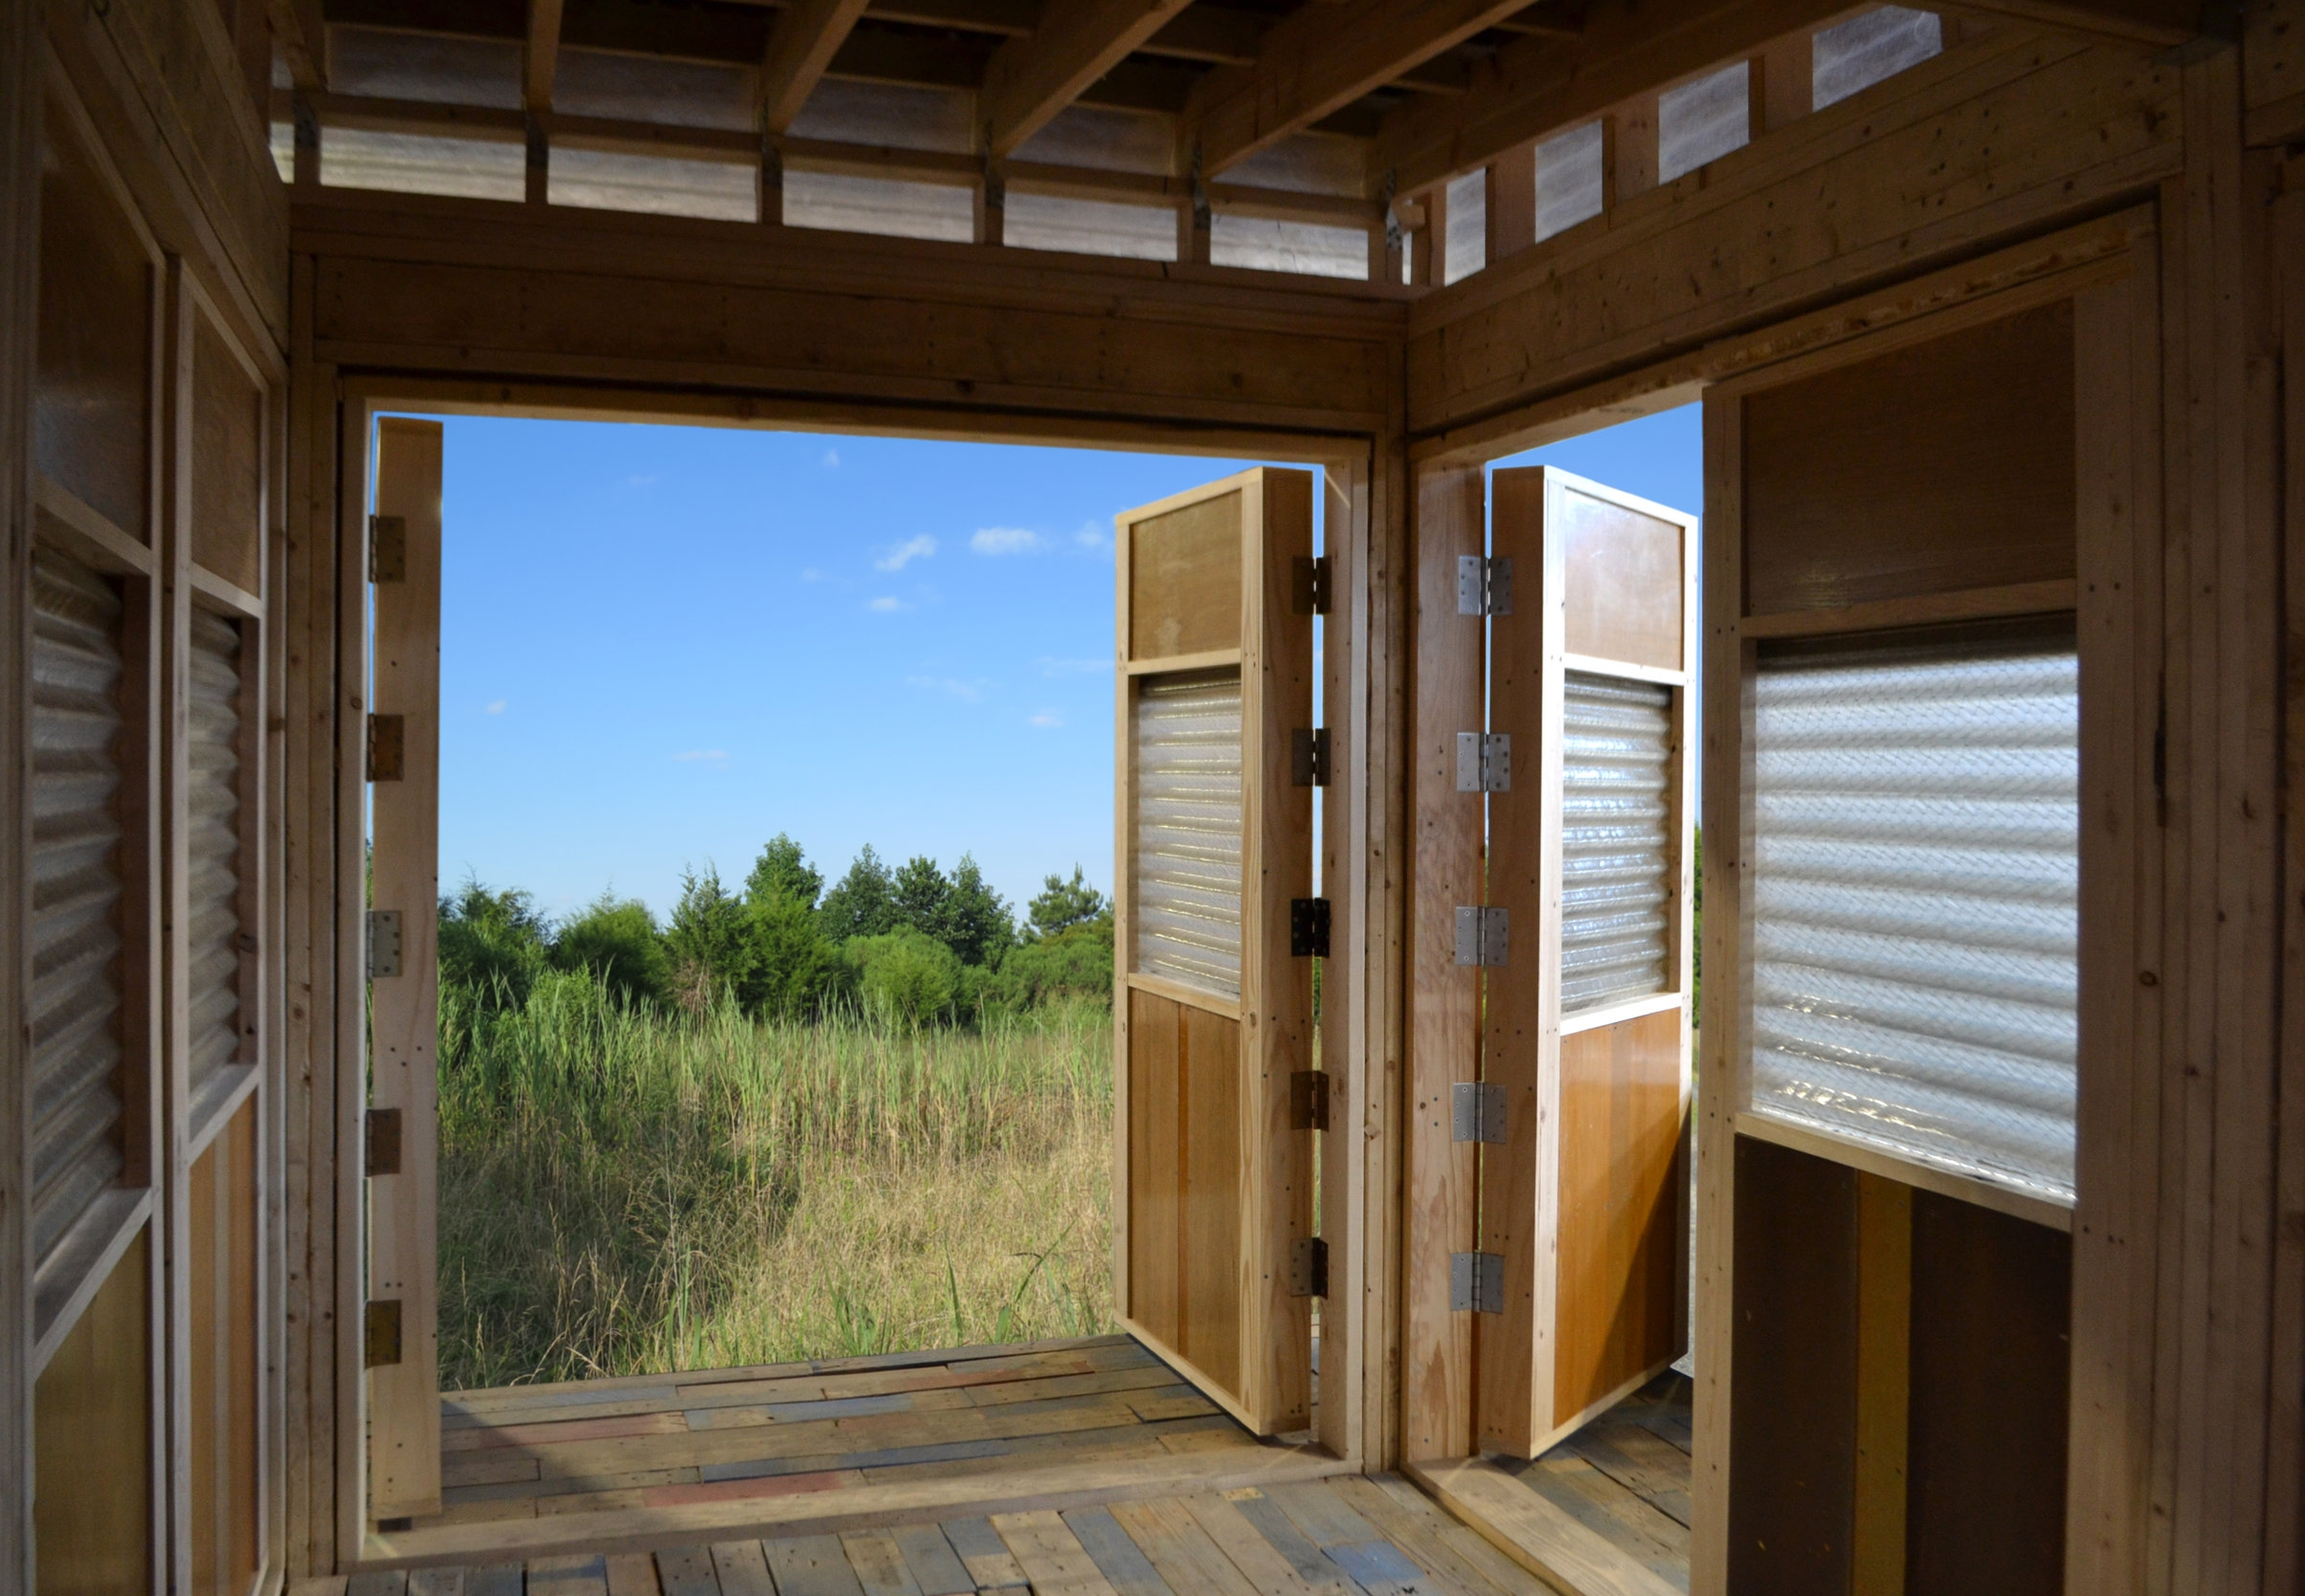 Five sets of doors can be opened to connect to the site. Waste materials include salvaged corrugated glass, pallet slats, church pews, door hinges, and corrugated translucent plastic.